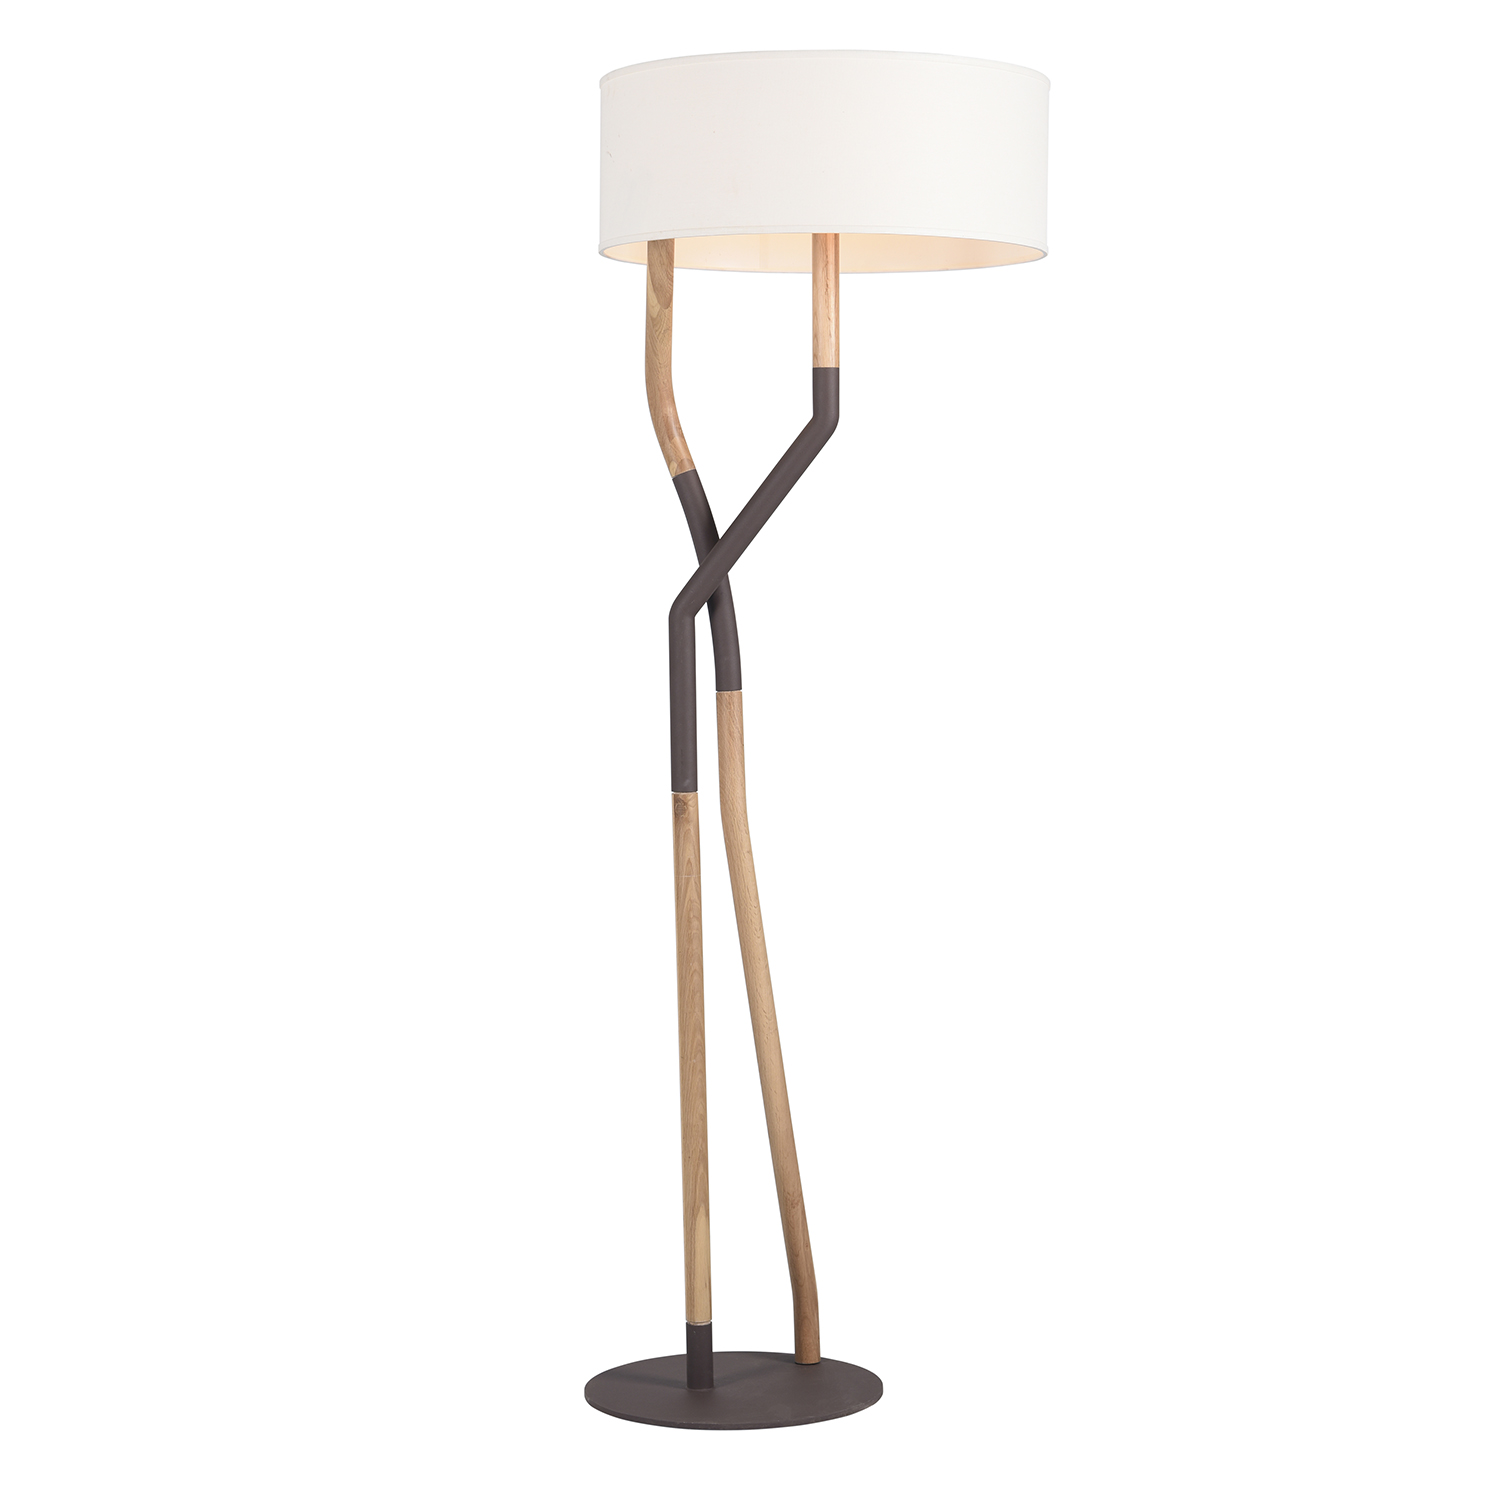 Minimalist Floor Lamp Bleu Nature Oakline Simple Floor Lamp L264